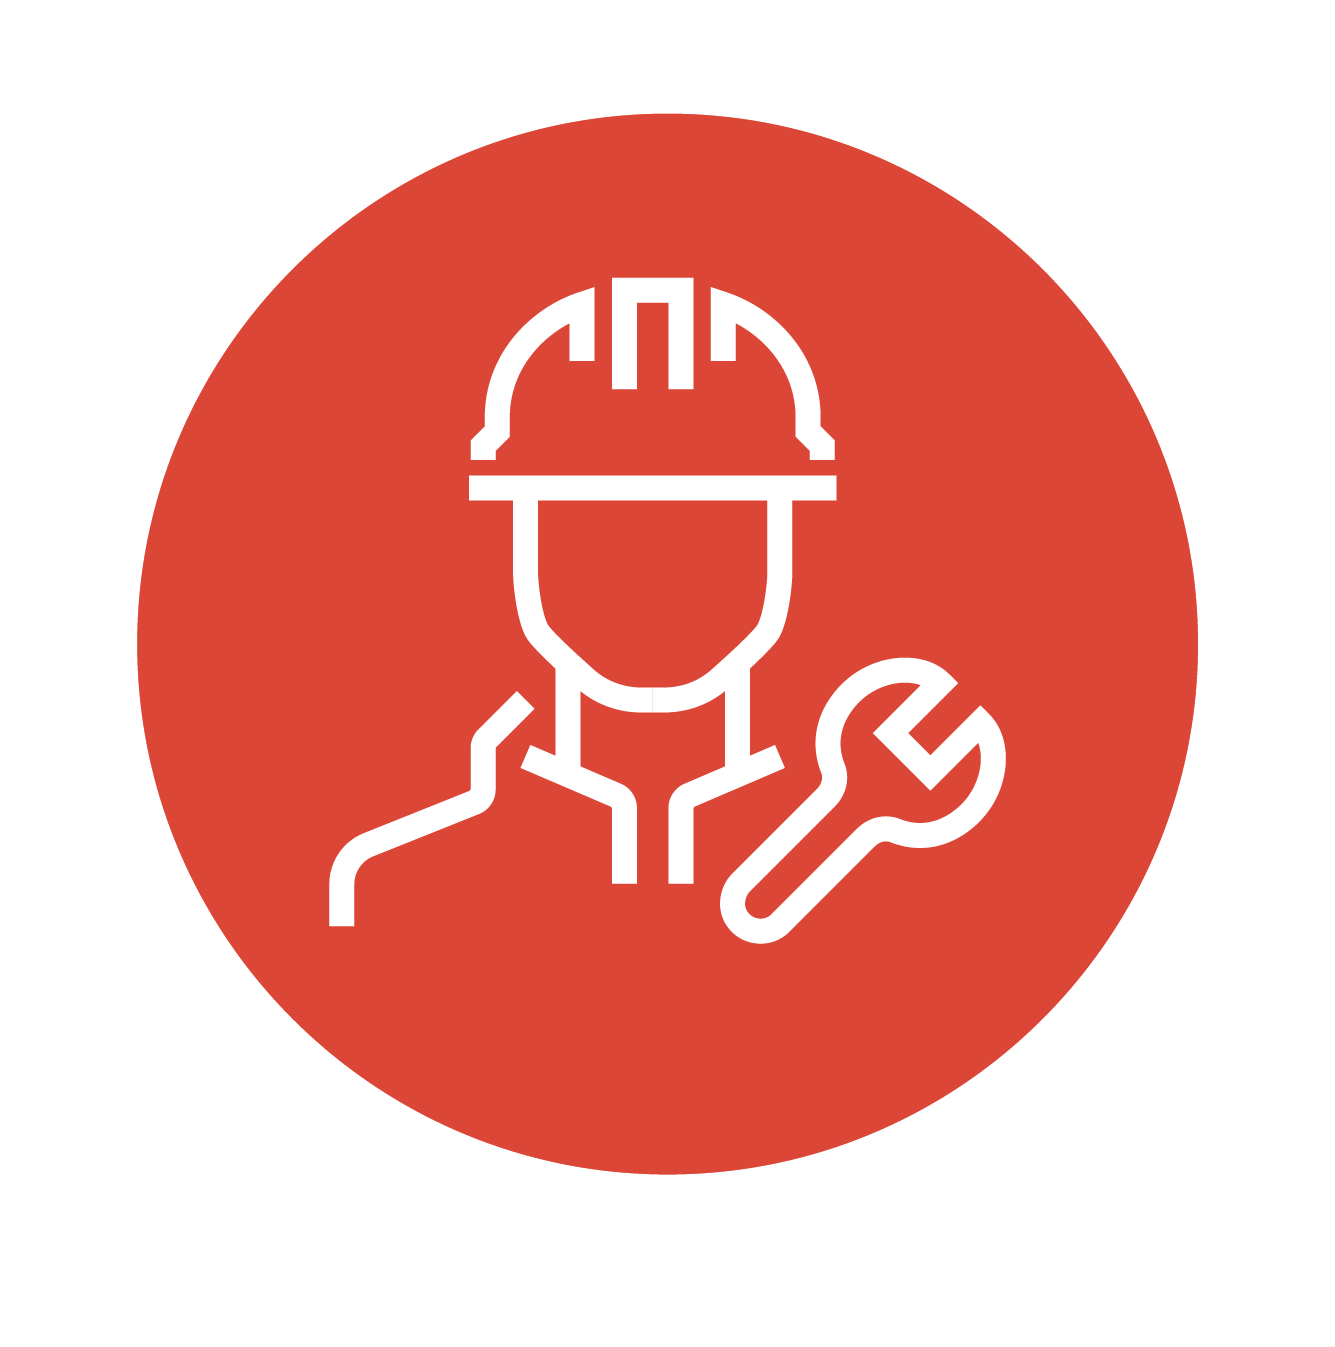 contractor symbol in hard hat with wrench